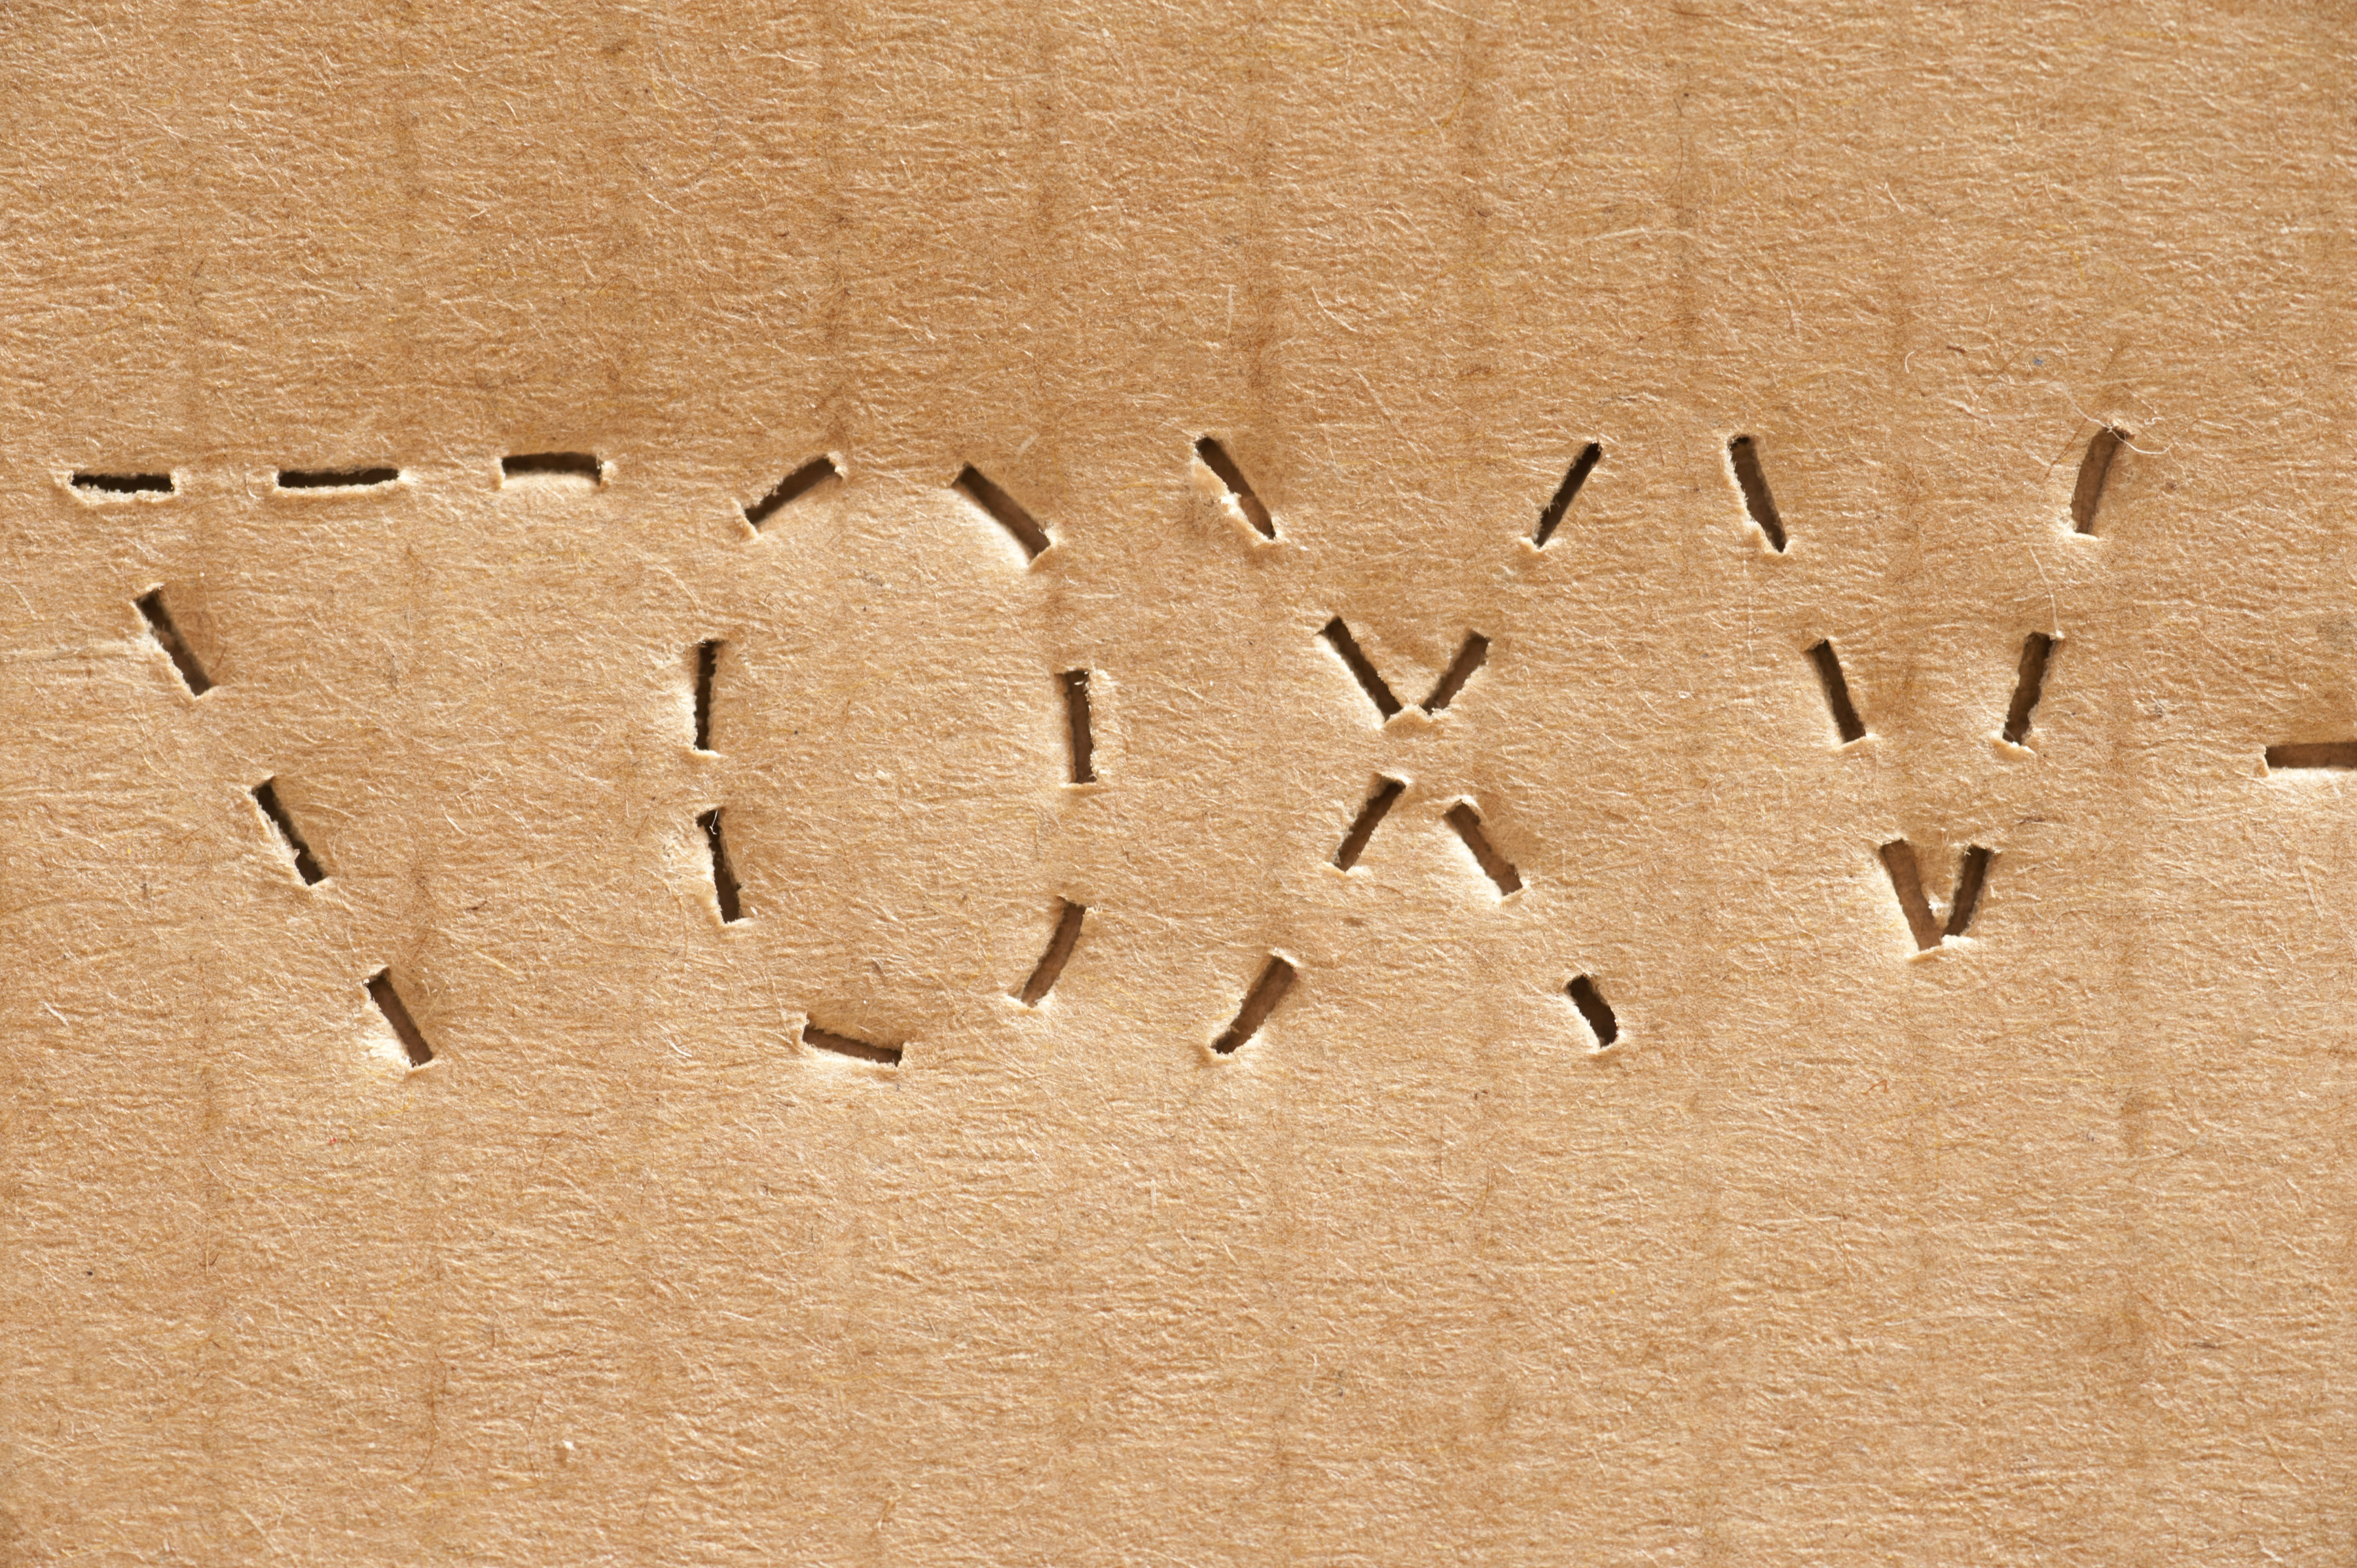 Cardboard stamping on a carton or box with a perforated code with letters and numbers for identification, close up full frame background